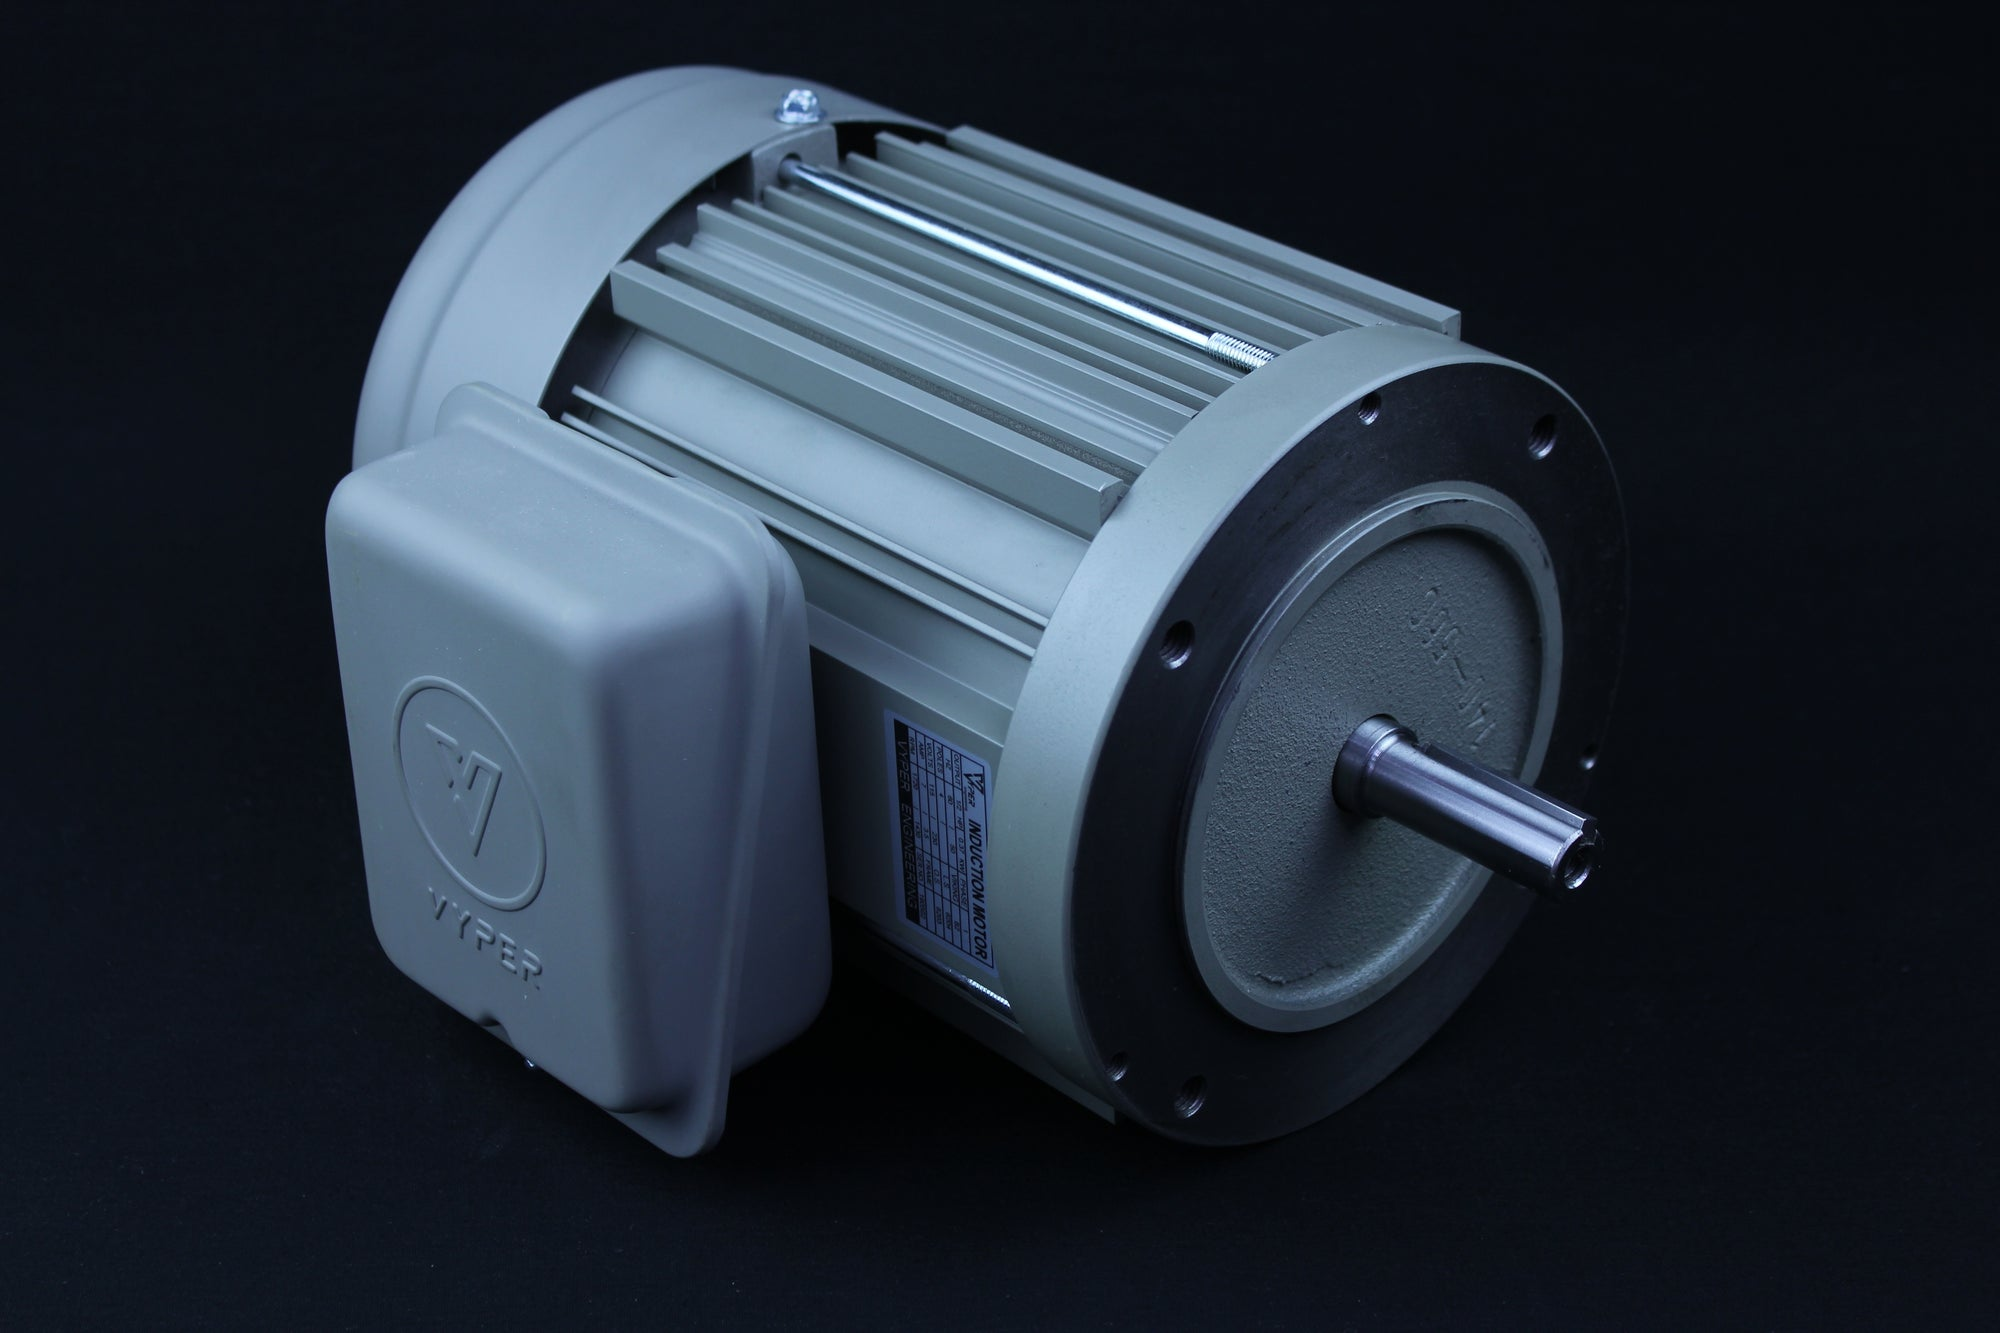 Single Phase Electrical Motor - 1/2HP - 115/230V - 1430/1720RPM - 50/60HZ - 56C Face